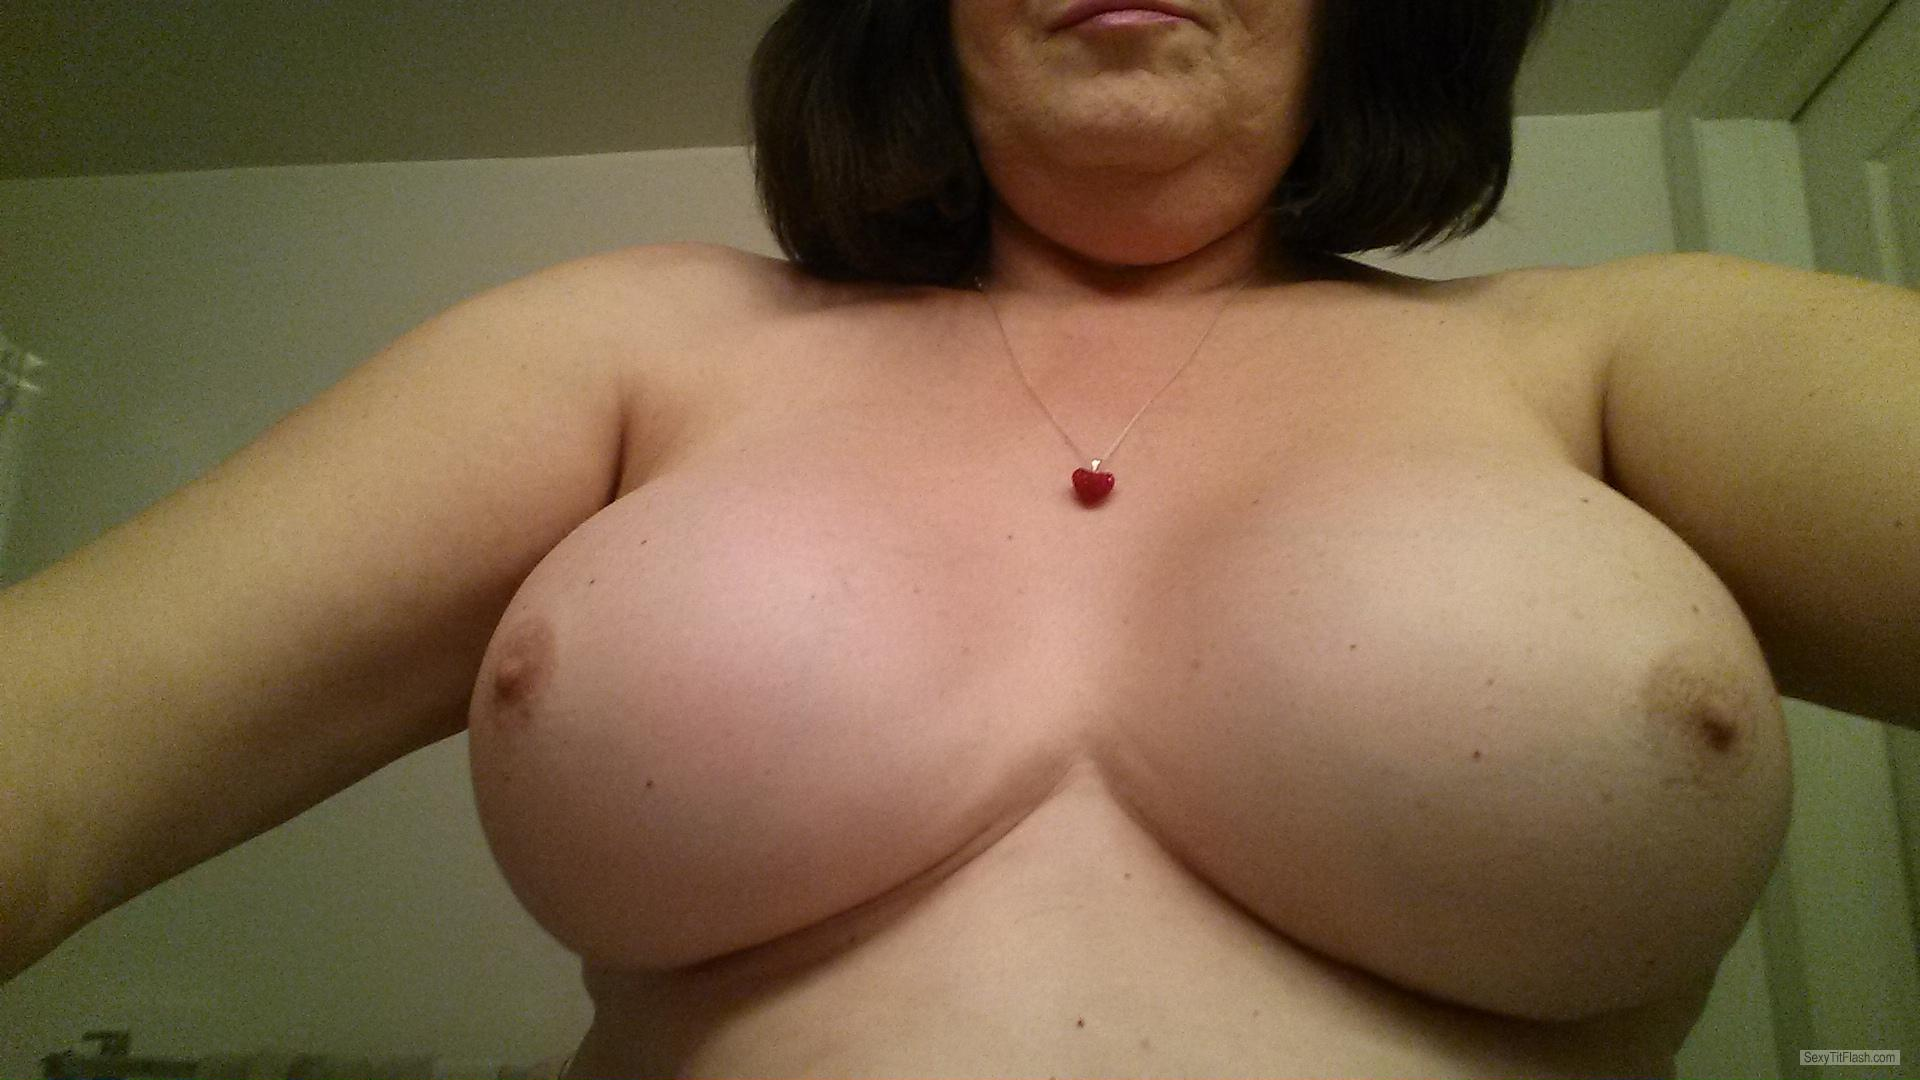 Tit Flash: My Medium Tits - Sammi from United Kingdom